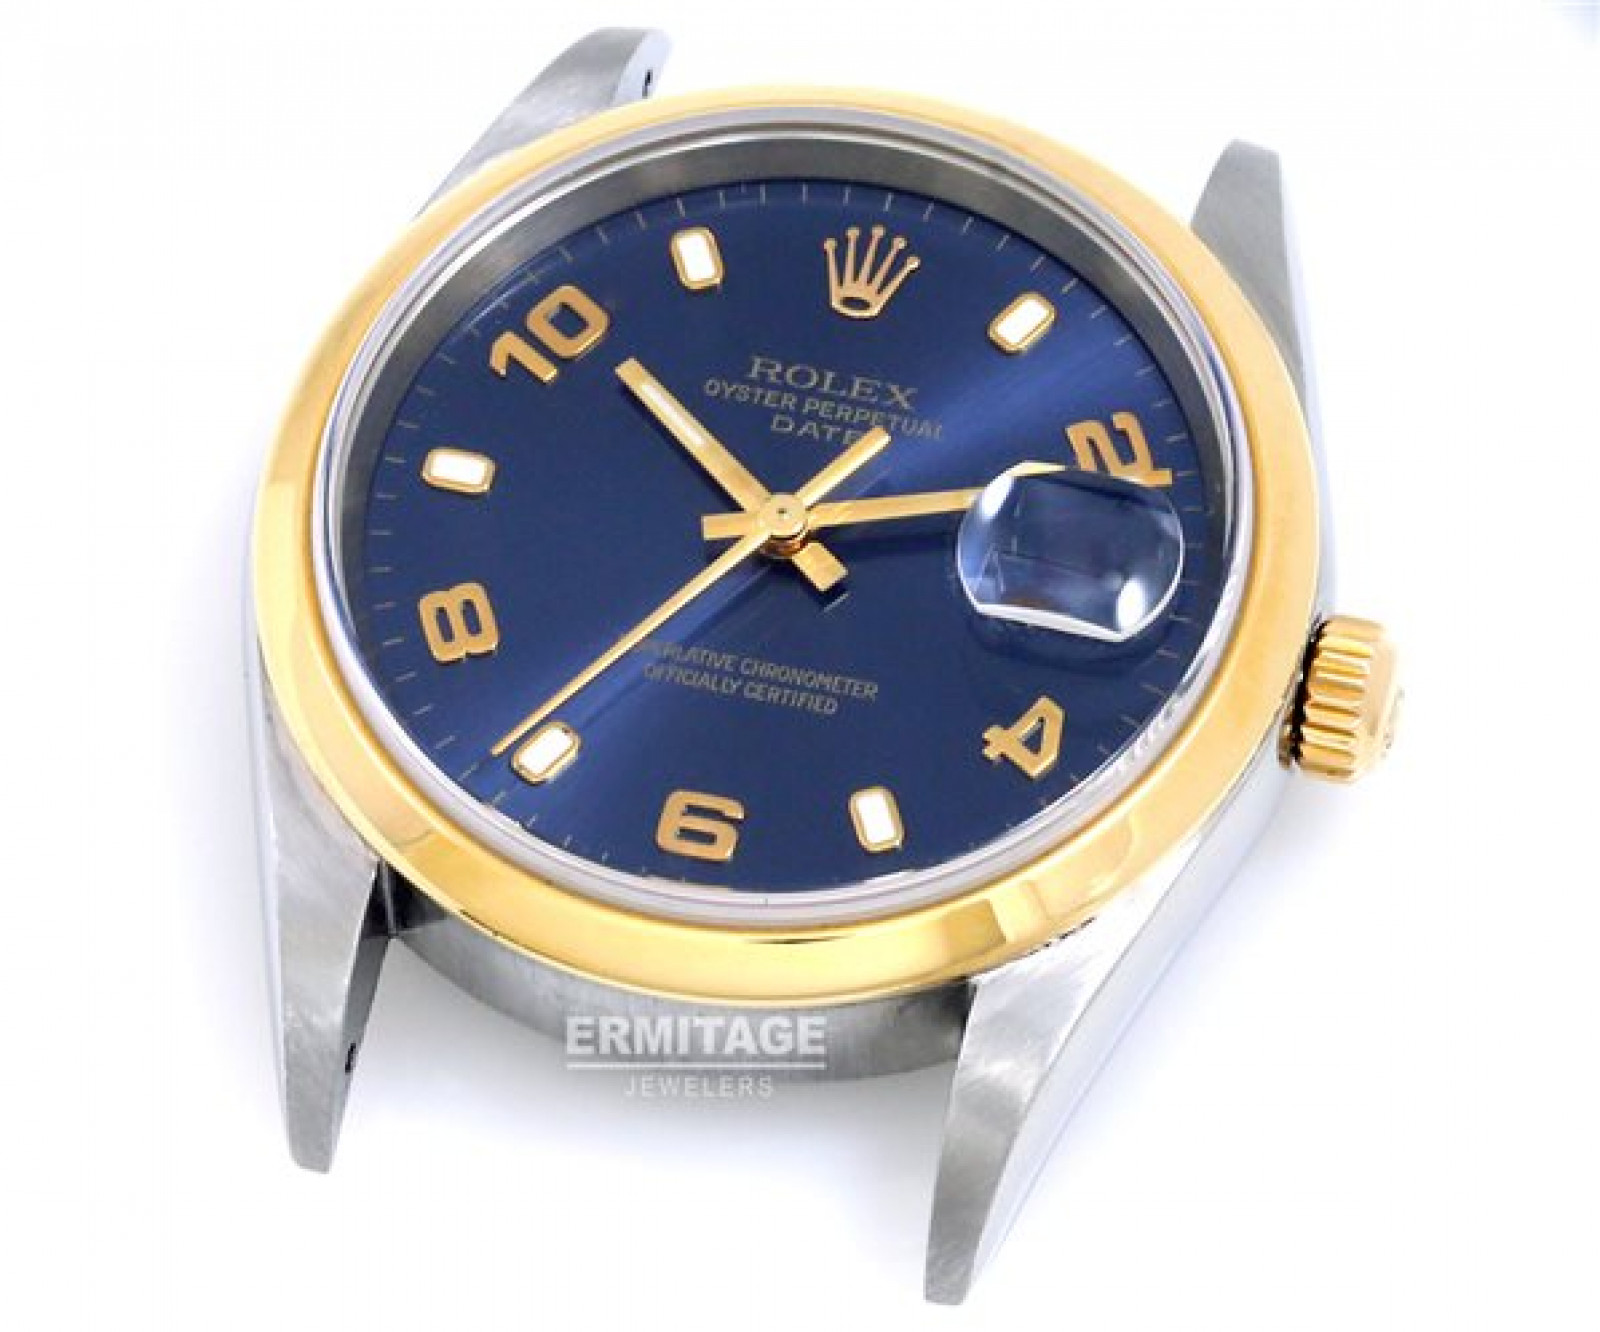 Pre-Owned Rolex Date 15203 with Blue Dial